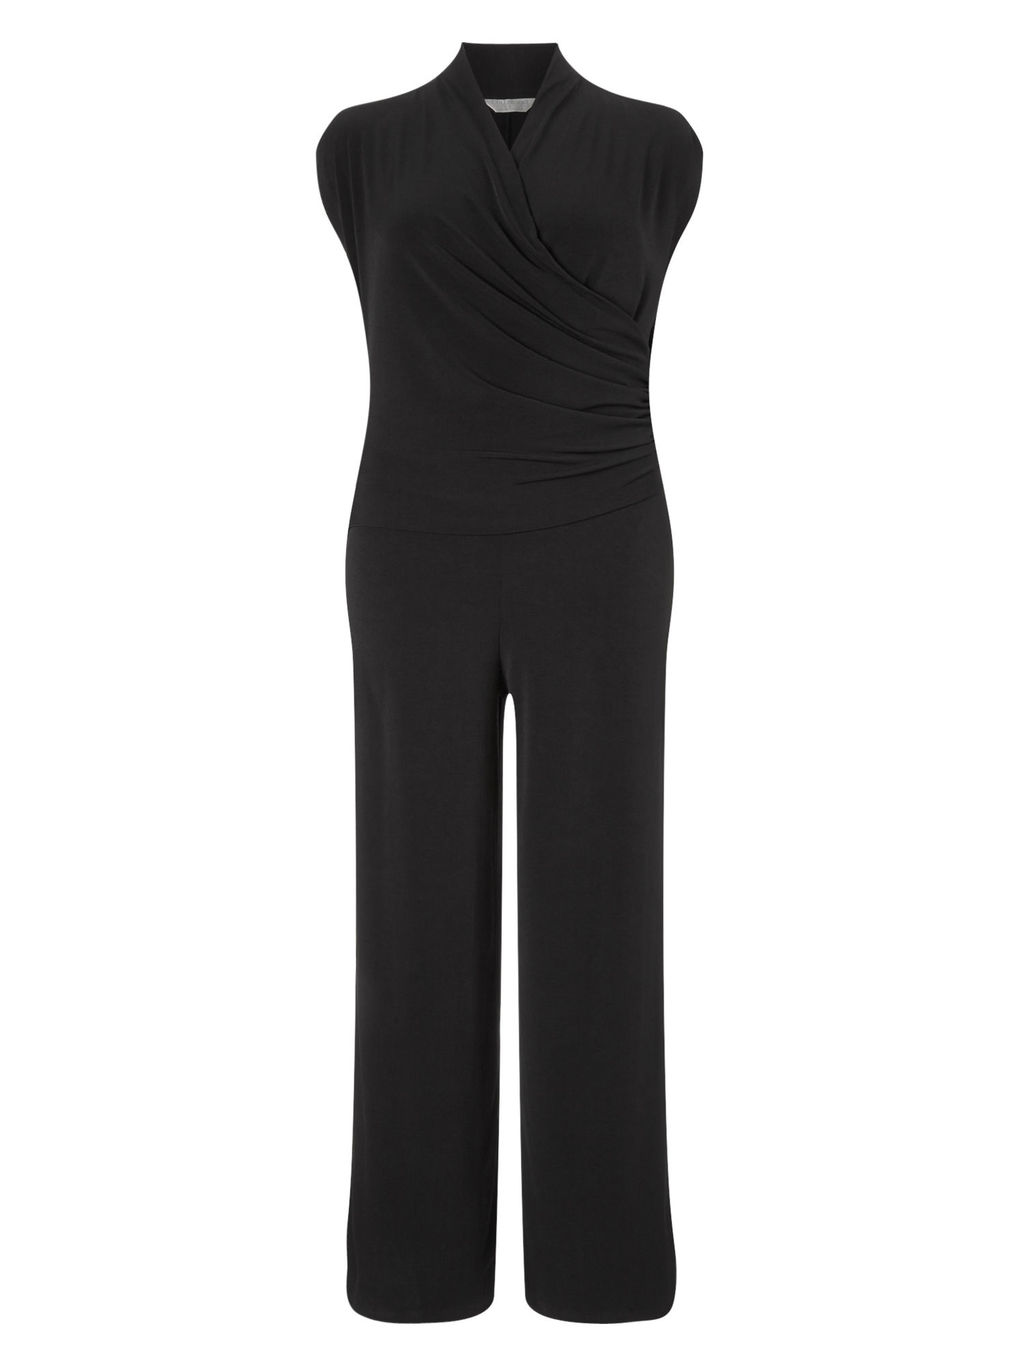 Black Jumpsuit - length: standard; neckline: v-neck; sleeve style: capped; pattern: plain; predominant colour: black; occasions: evening; fit: body skimming; fibres: polyester/polyamide - stretch; sleeve length: short sleeve; style: jumpsuit; pattern type: fabric; texture group: jersey - stretchy/drapey; season: s/s 2016; wardrobe: event